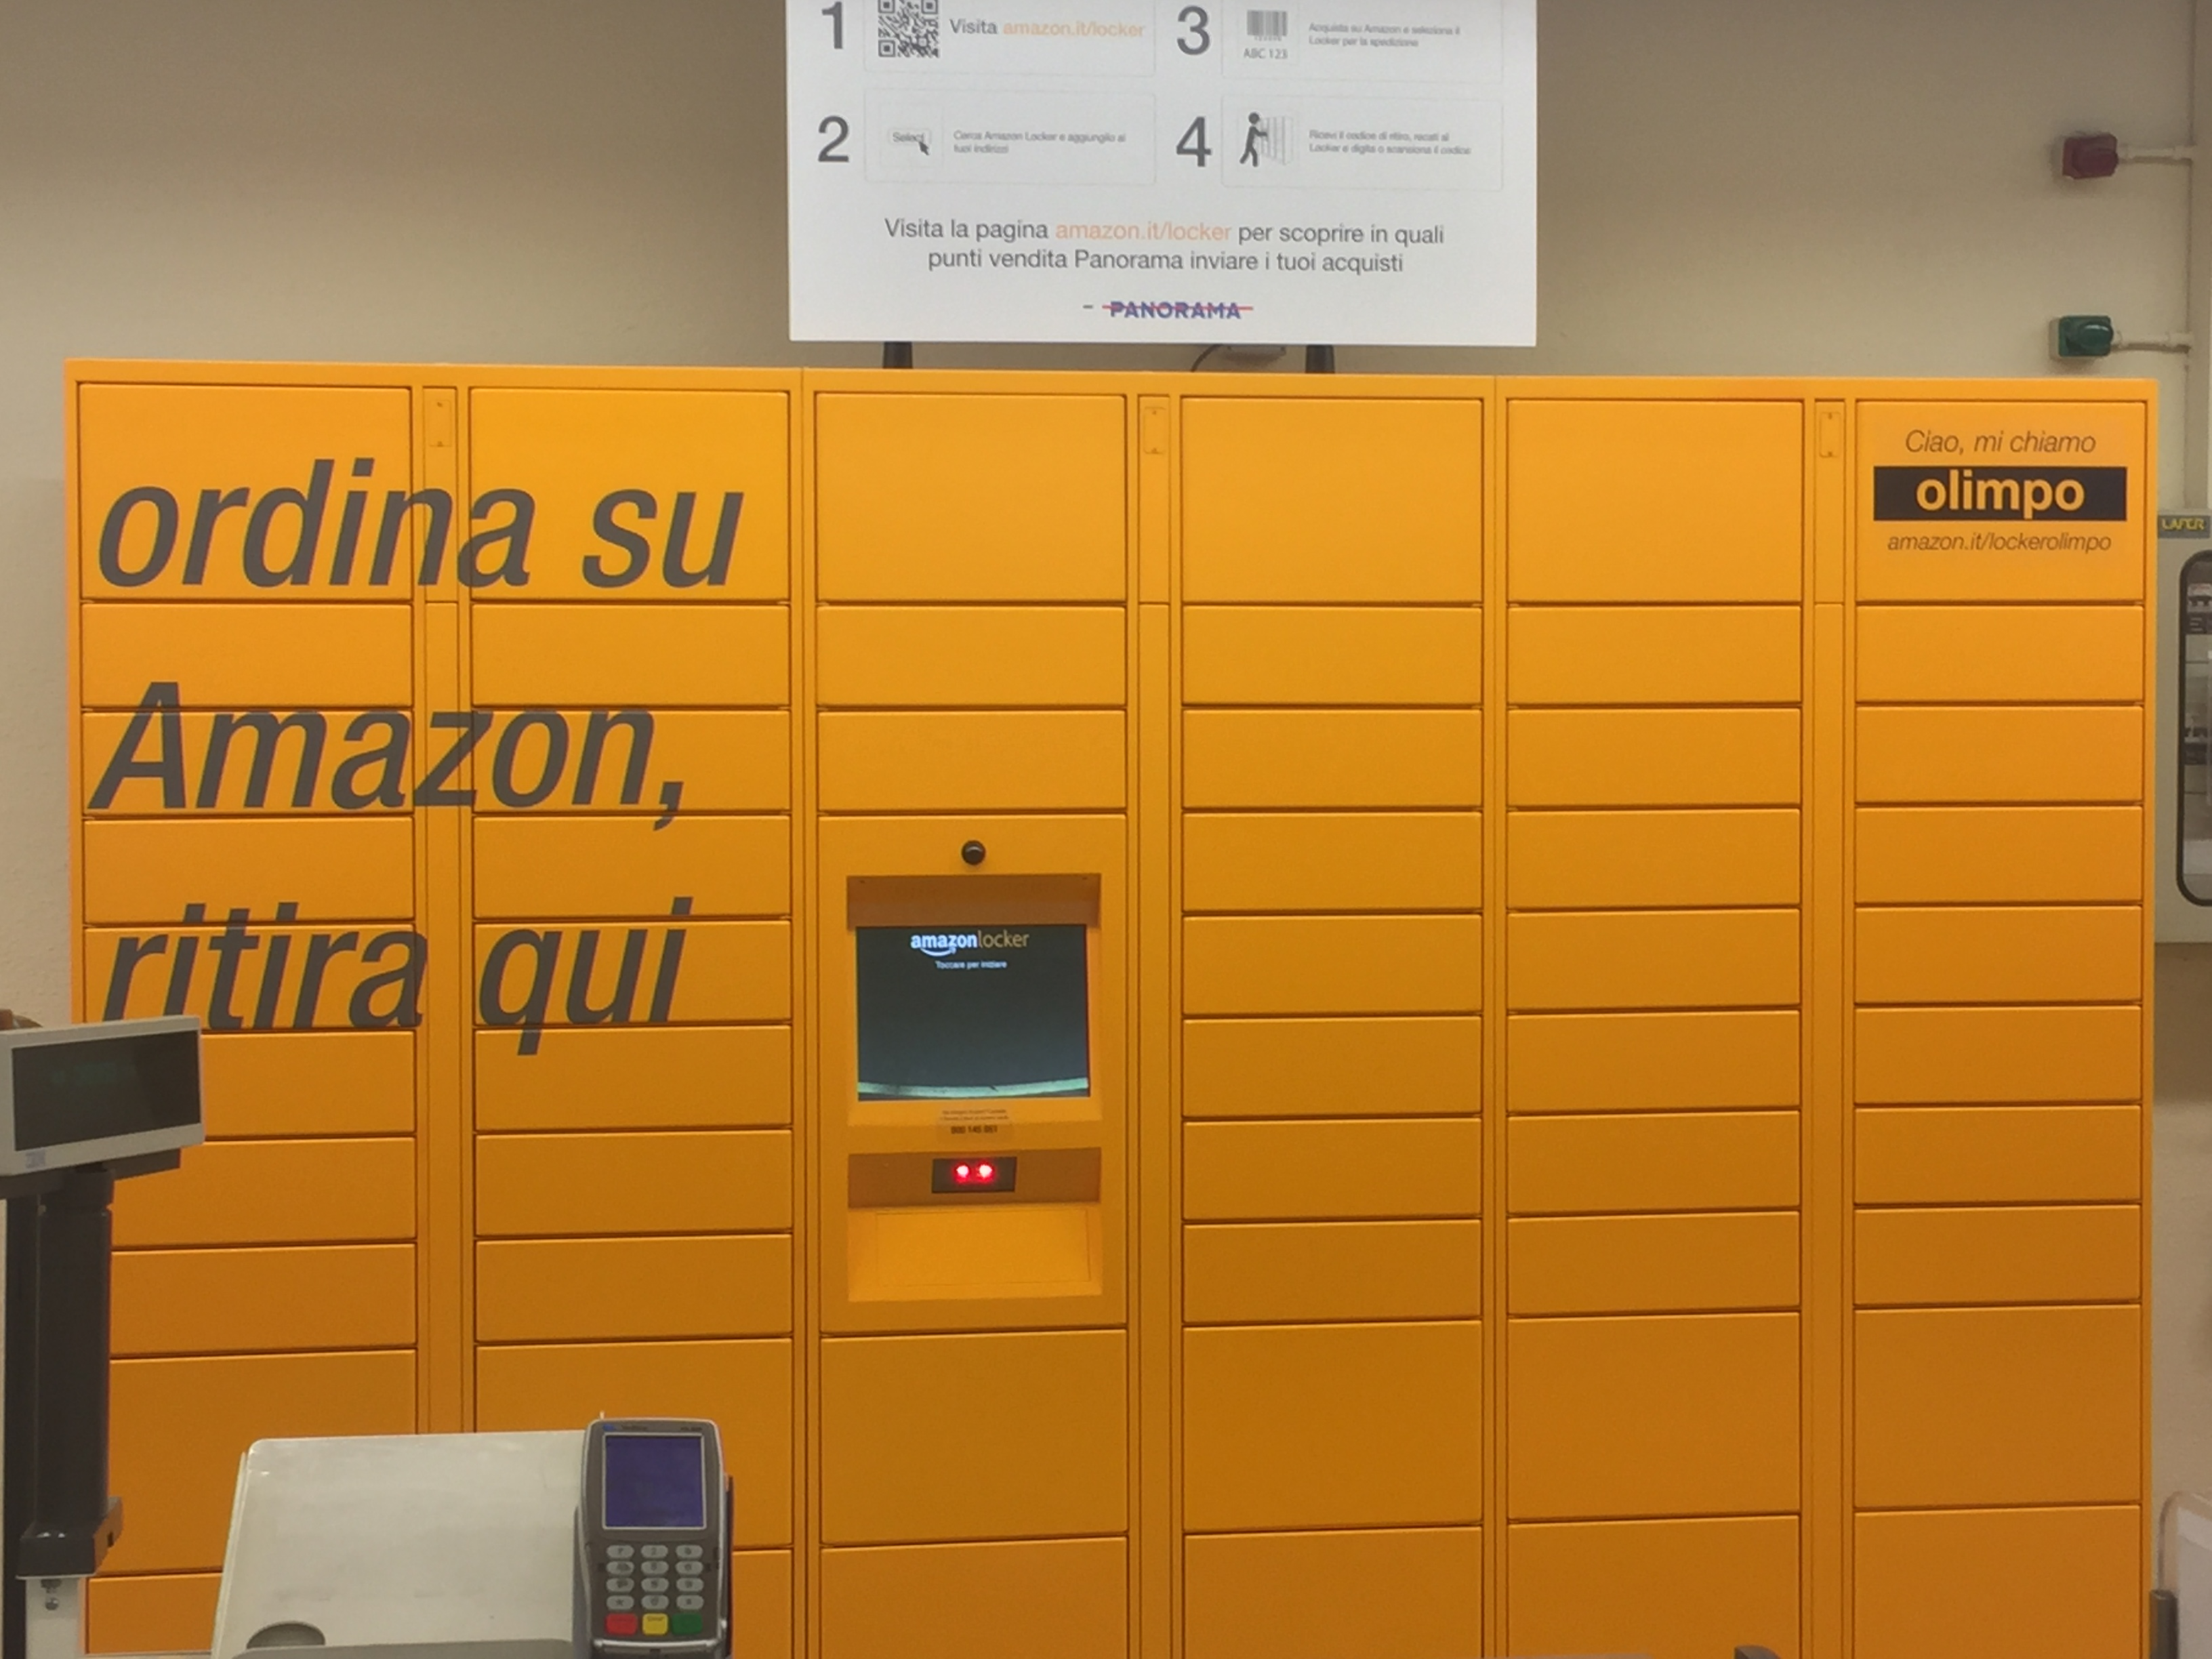 Amazon.it Aiuto: Informazioni sui Locker